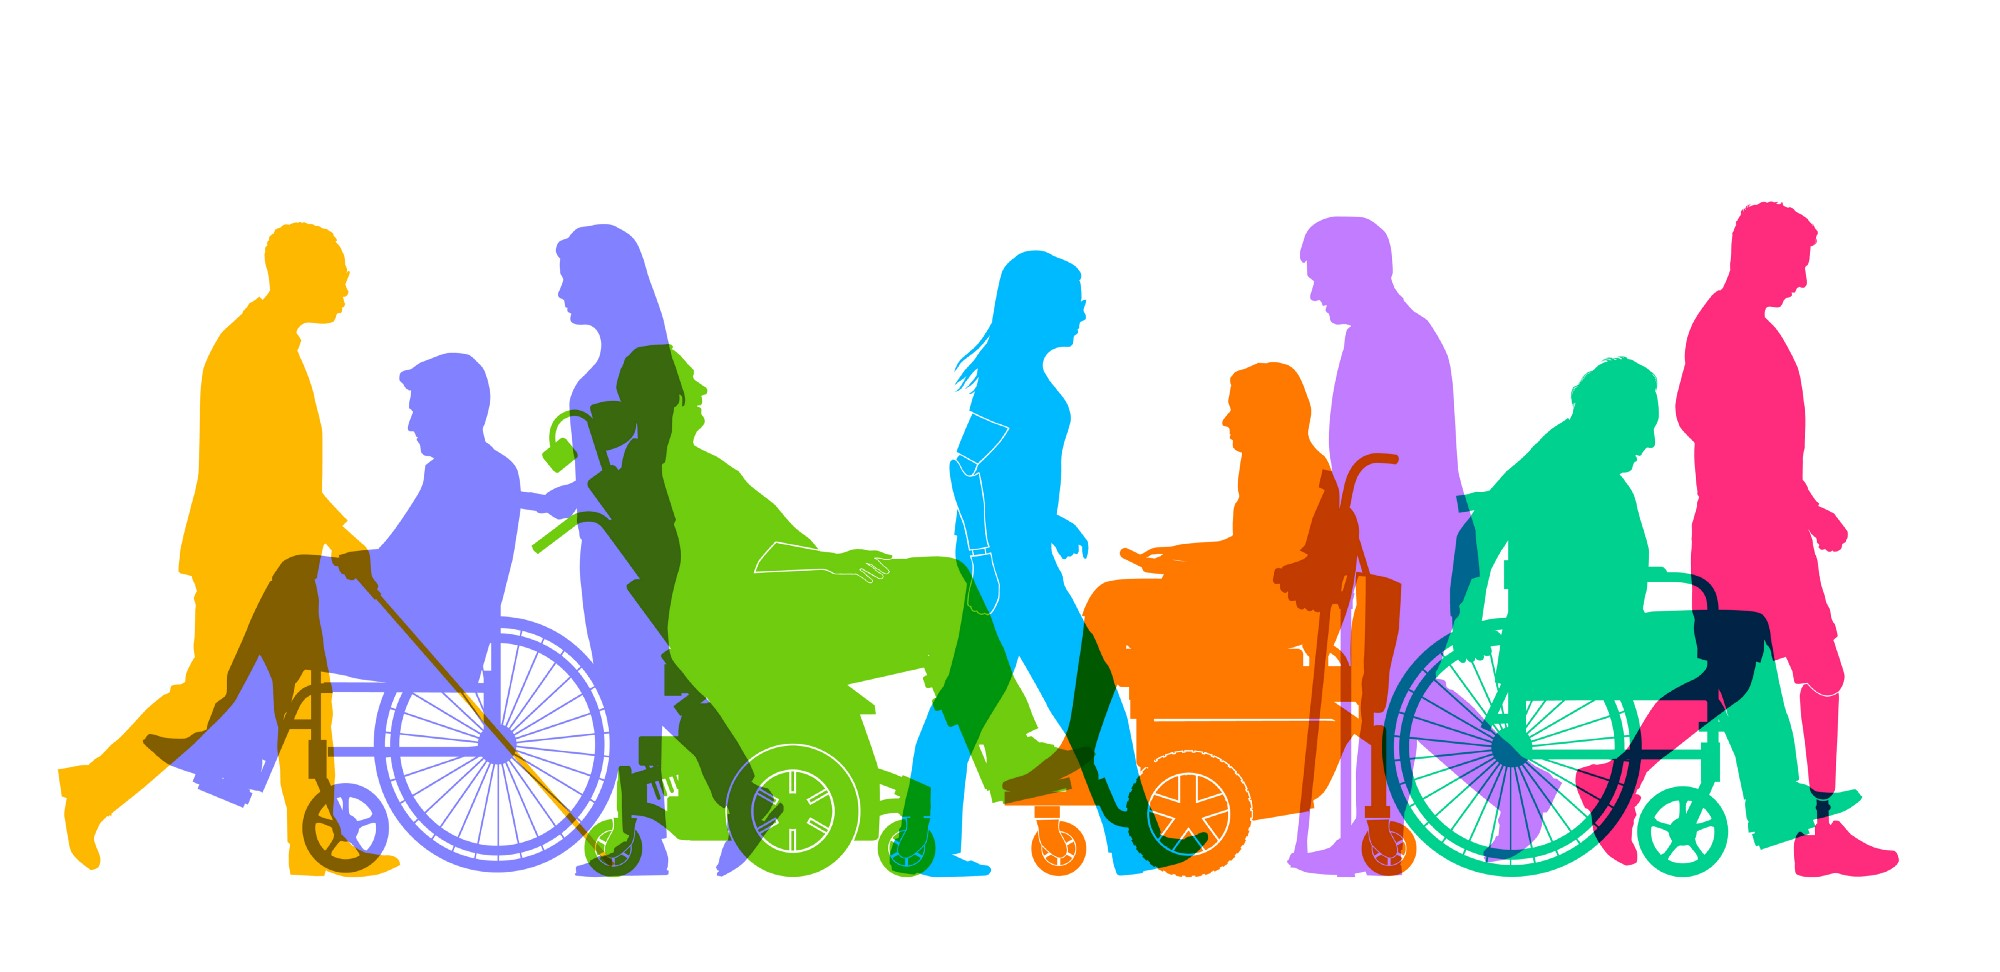 An illustration that depicts a group of people with different disabilities, including visual and motor.